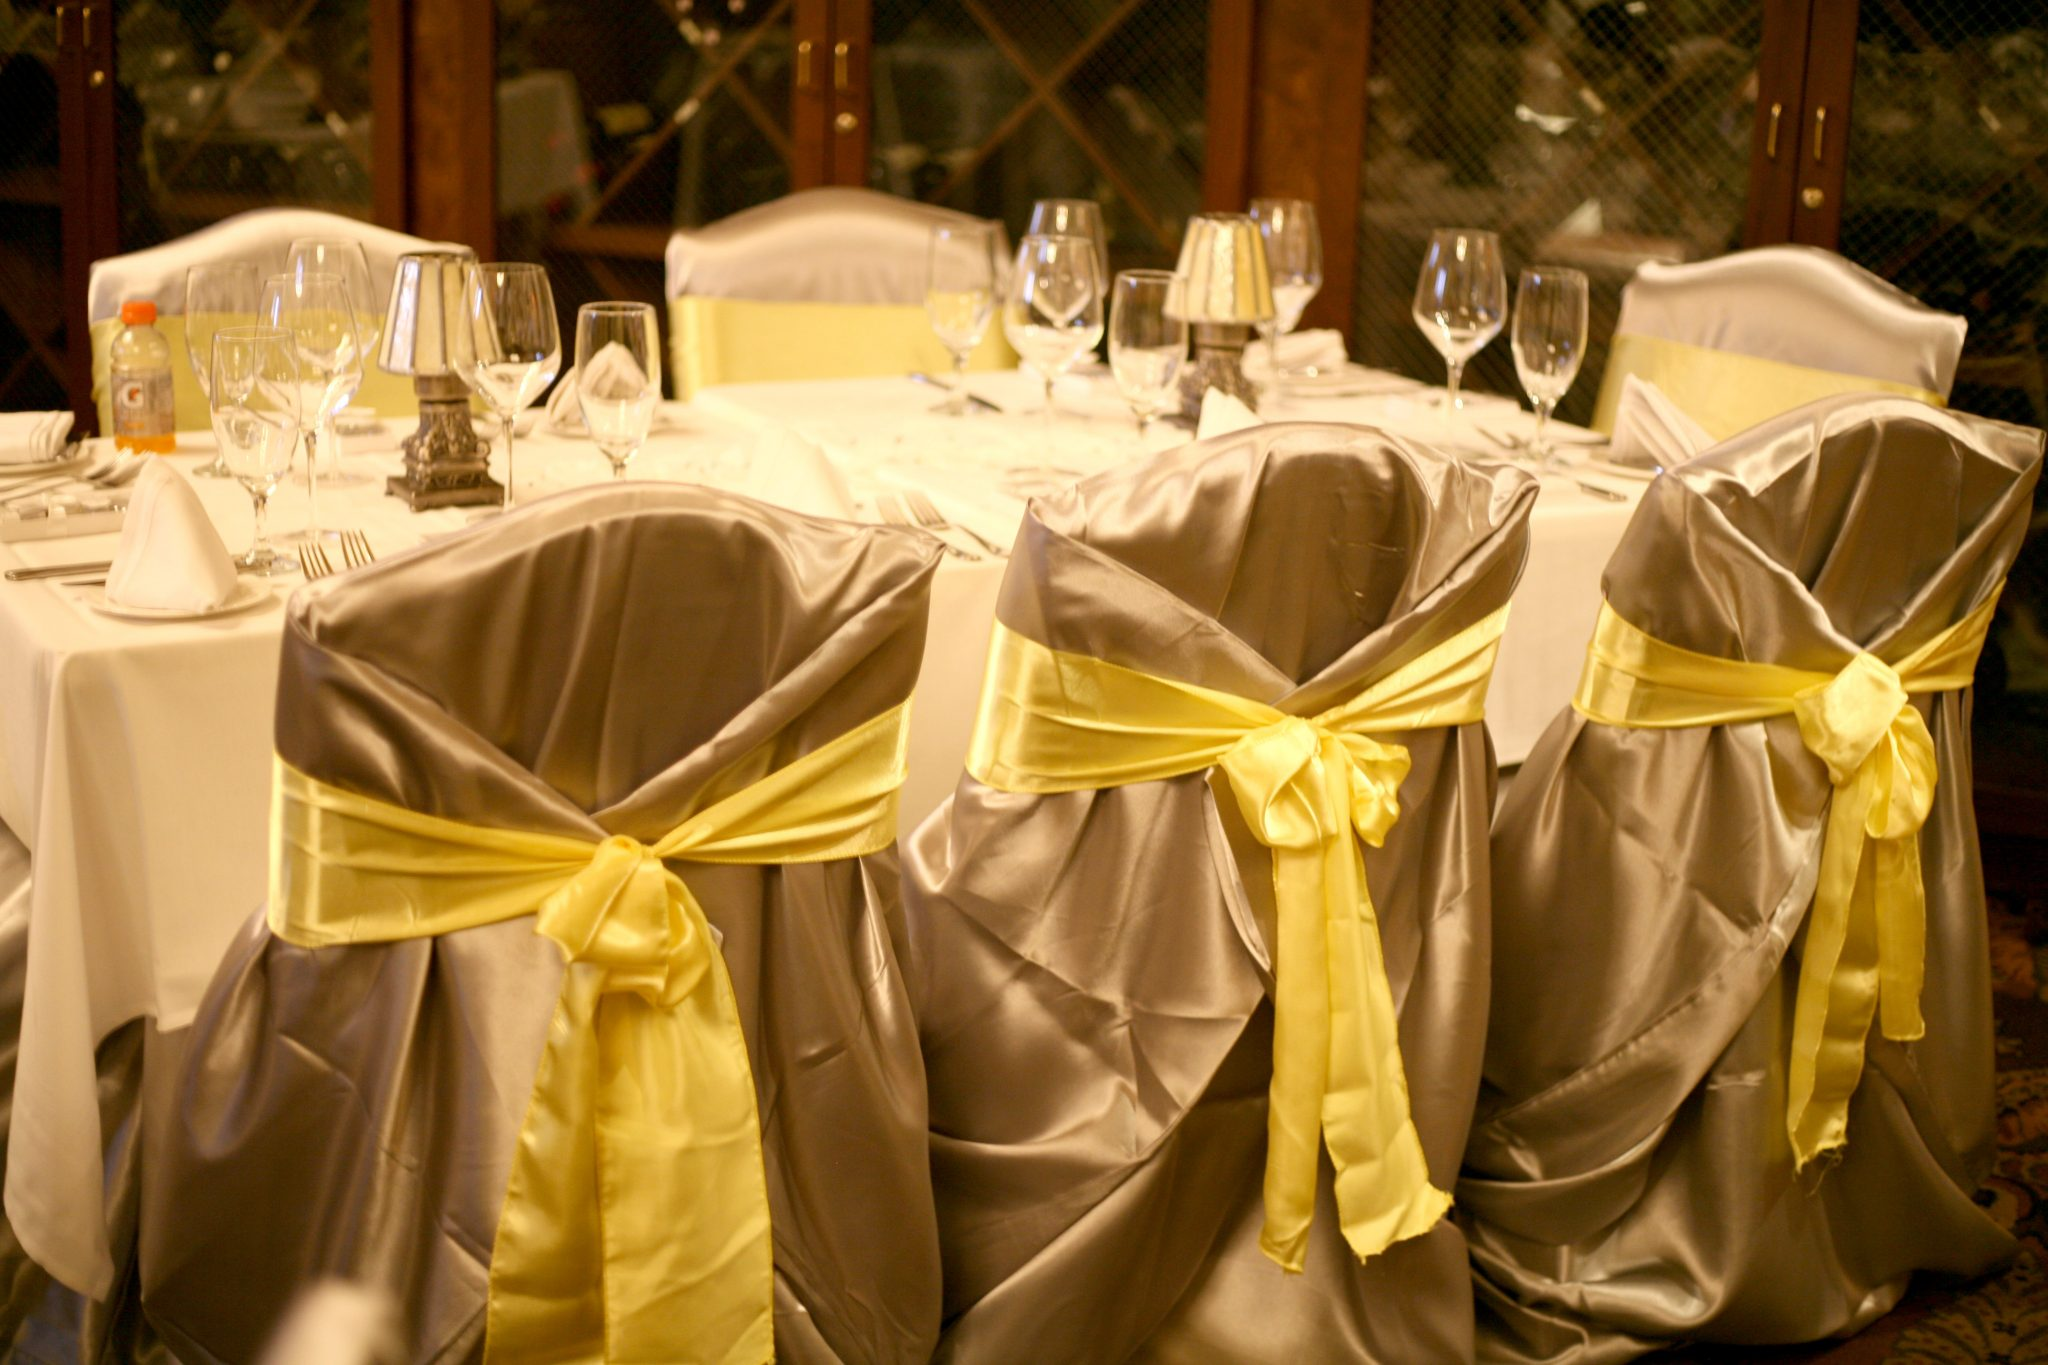 Yellow Satin Sashes Ties On White Chair Covers Wedding Linen Als Grey Runners Genesis Center Gary